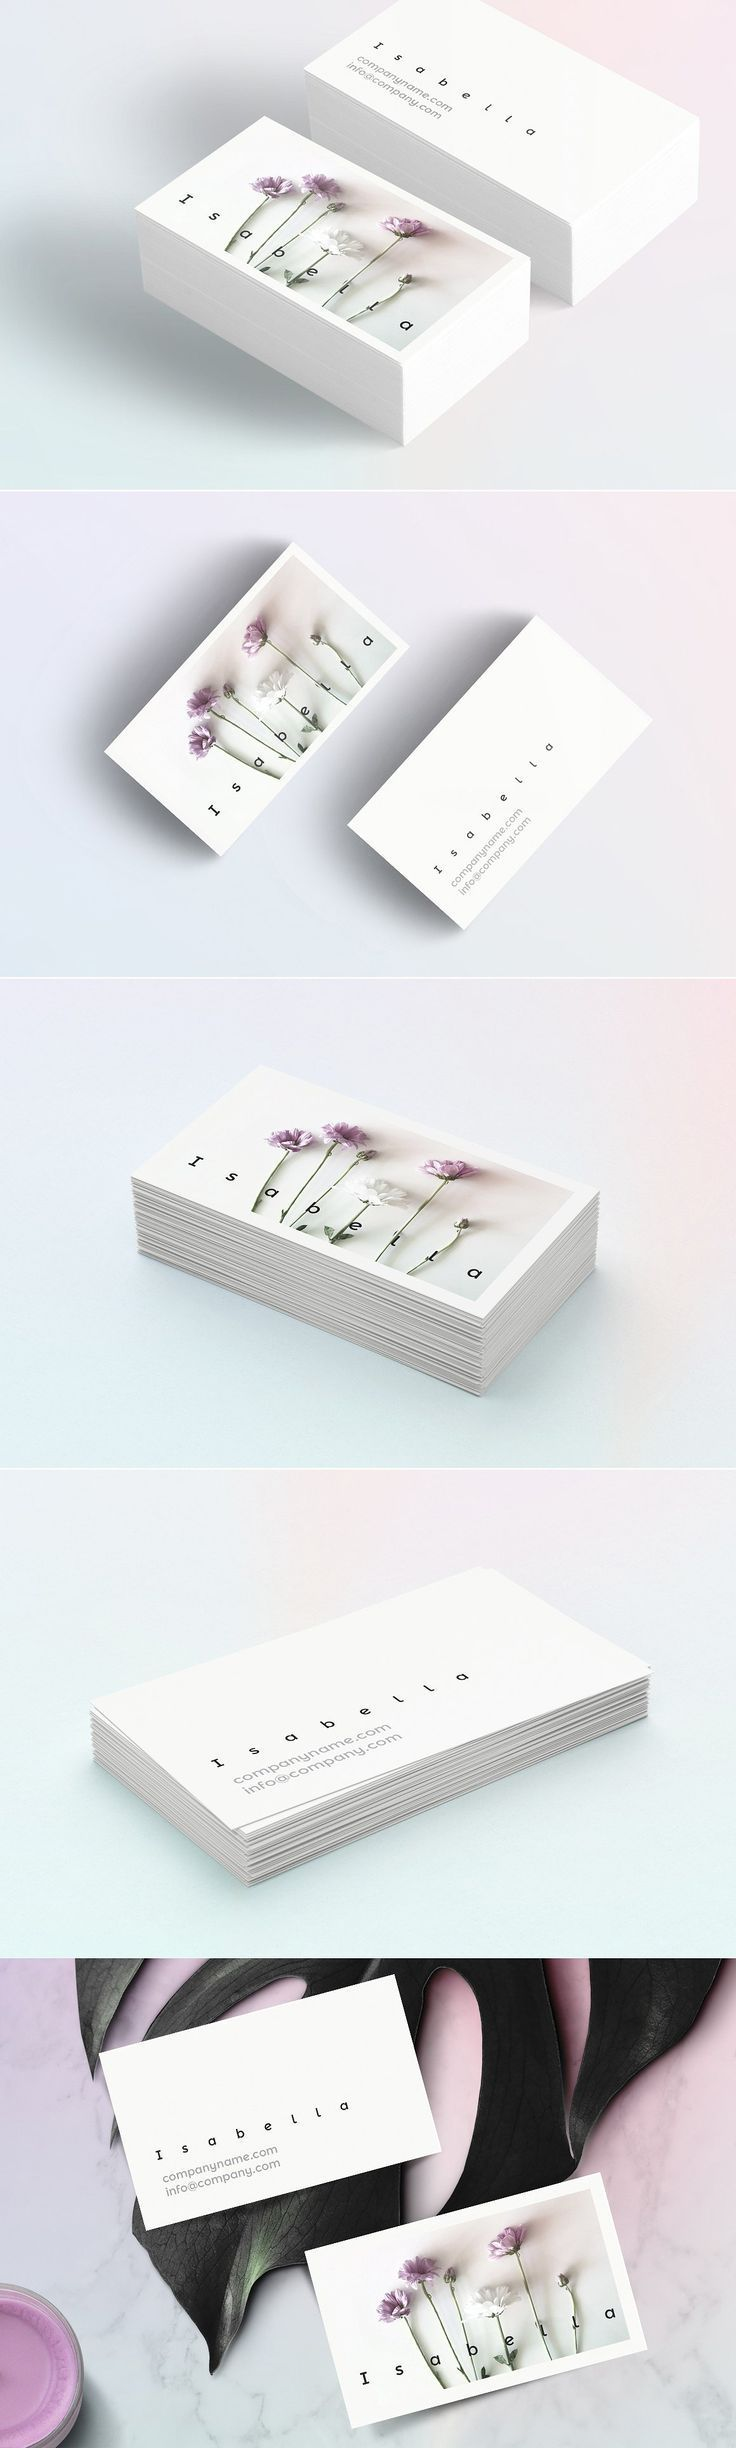 Isabella-floral business card by Polar Vectors on @creativemarket Professional business card template, perfect for modern and cool corporate appearance for business companies or personal persons. This layout is simple, handmade, unique and for multipurpose opportunities; have a good inspiration, grab some ideas and DIY.